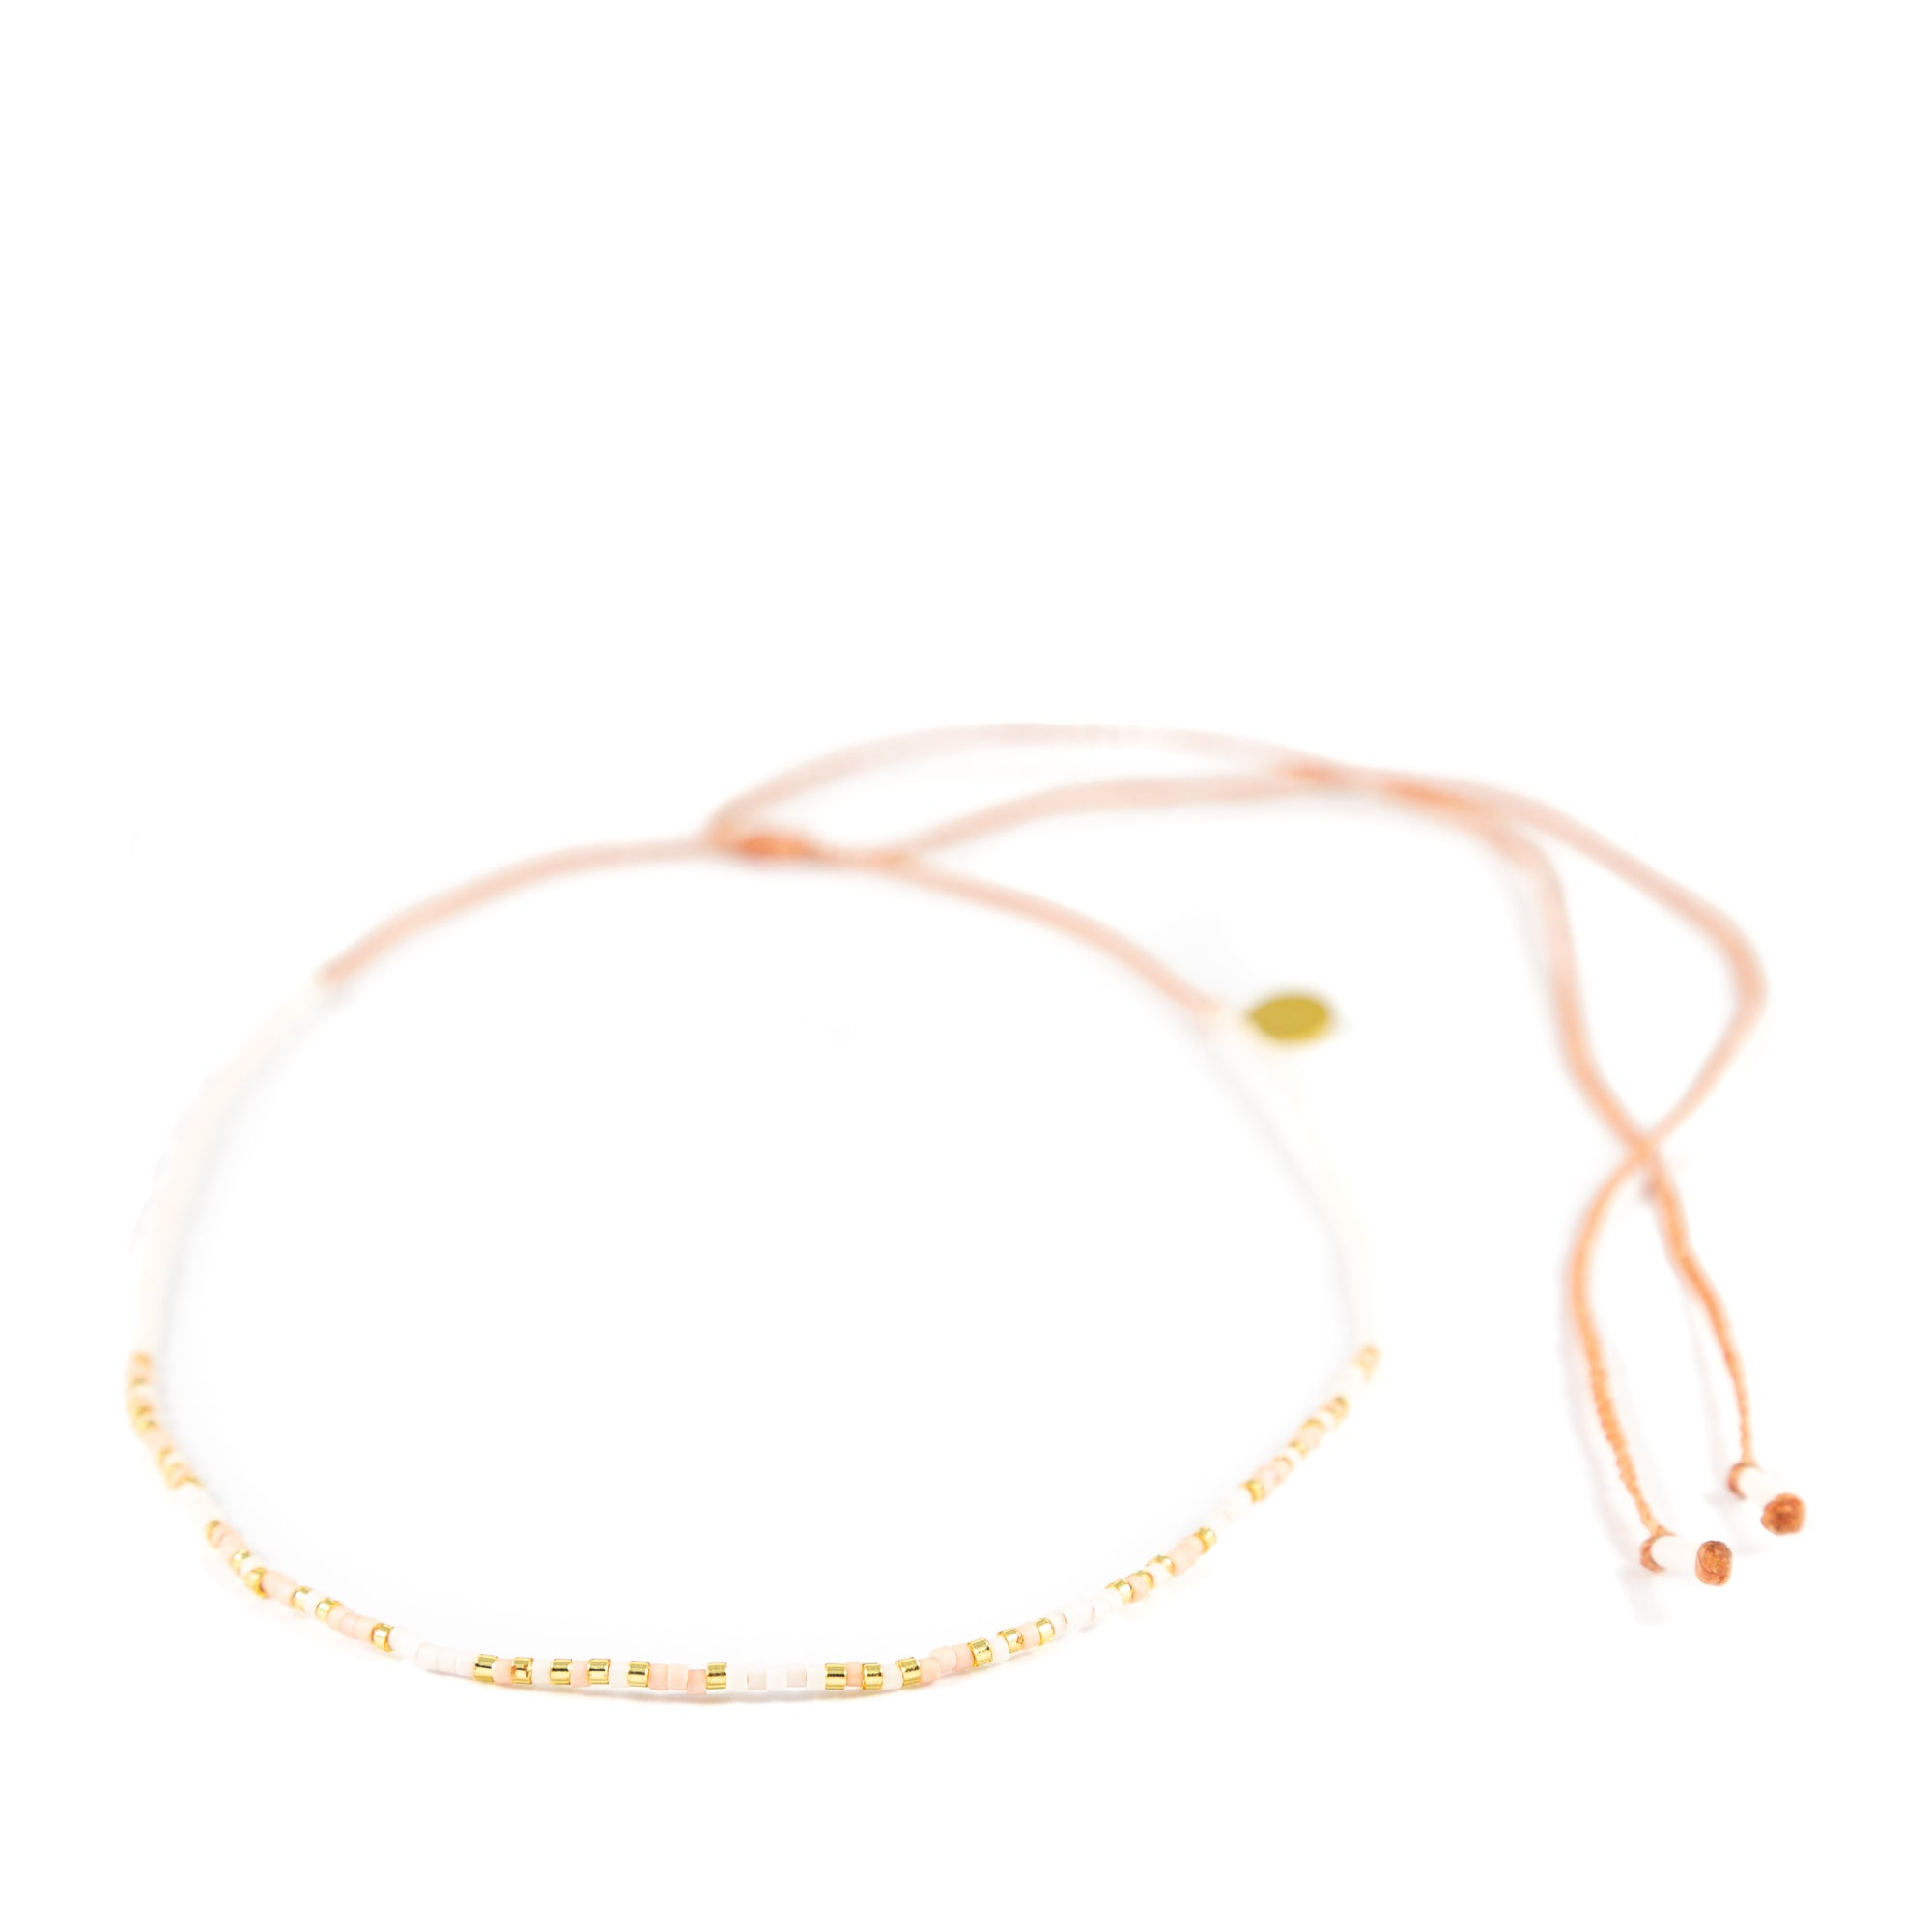 Coral COURAGE Morse Code Choker